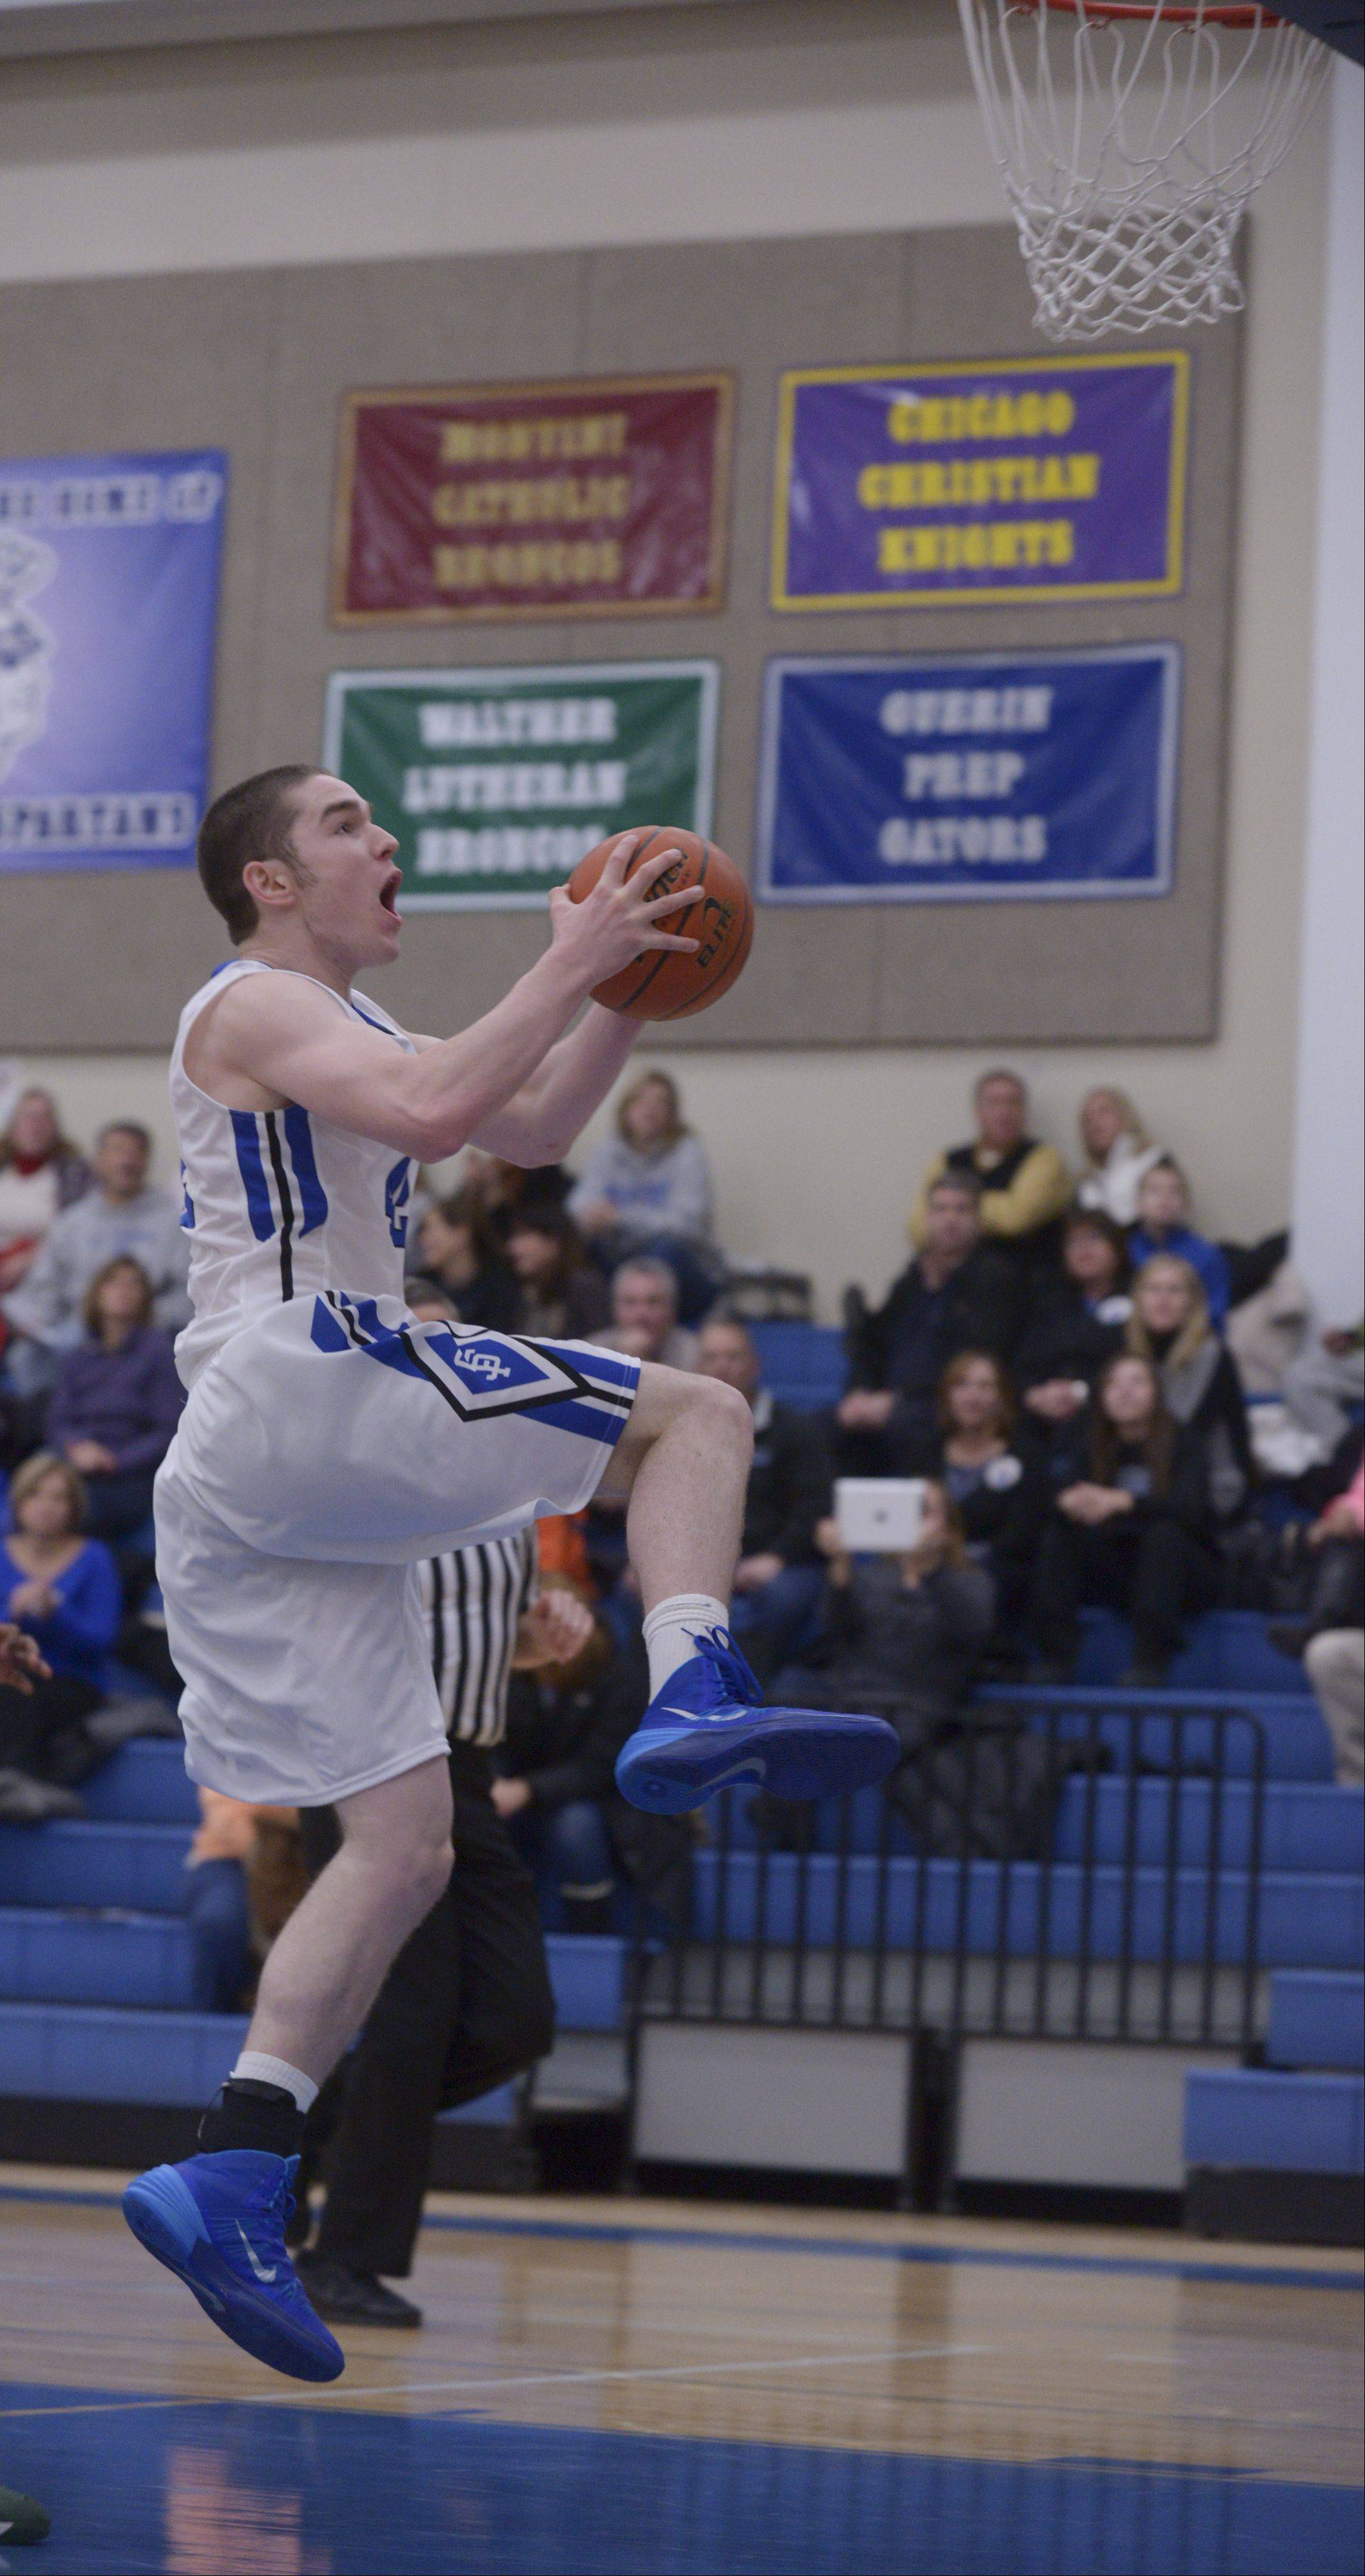 St. Francis' Kilian Brown drives to the basket against Walther Christian Academy at home in boys basketball.